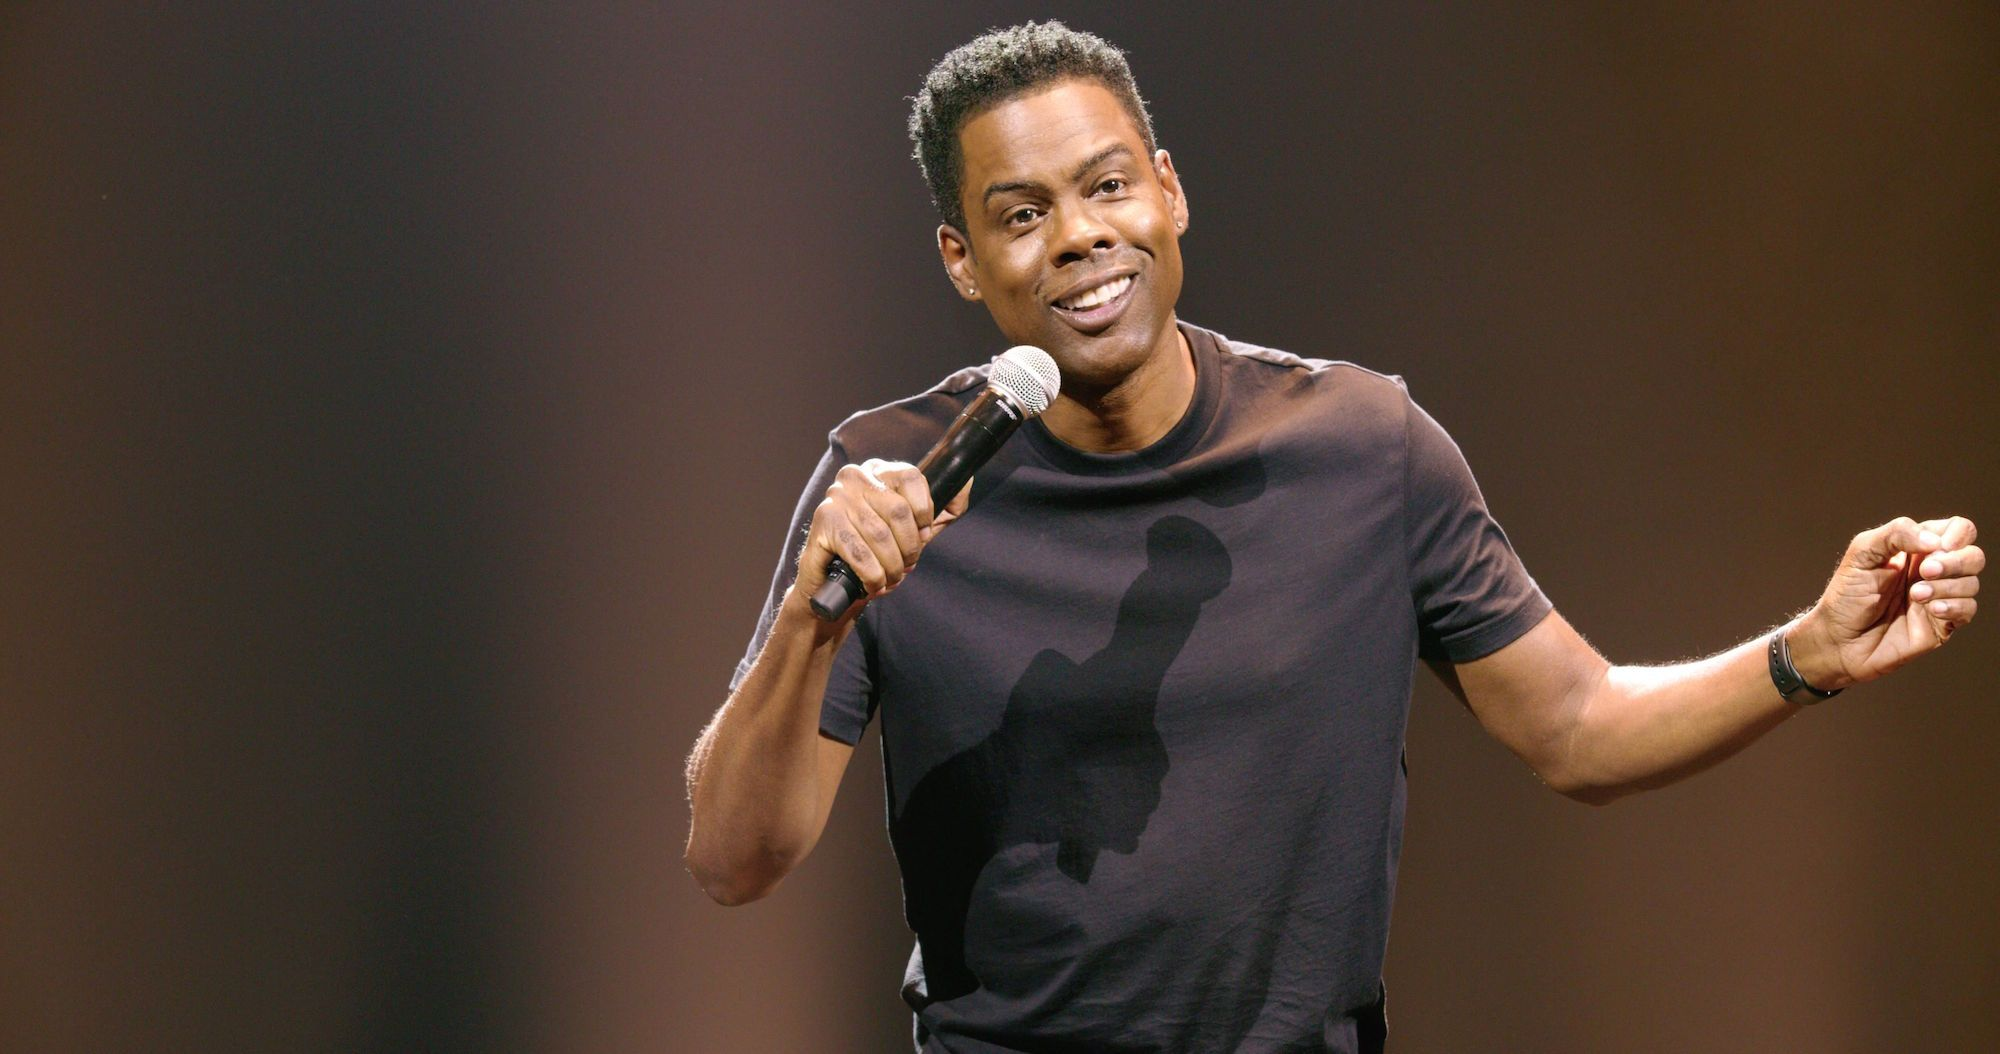 Image result for chris rock images